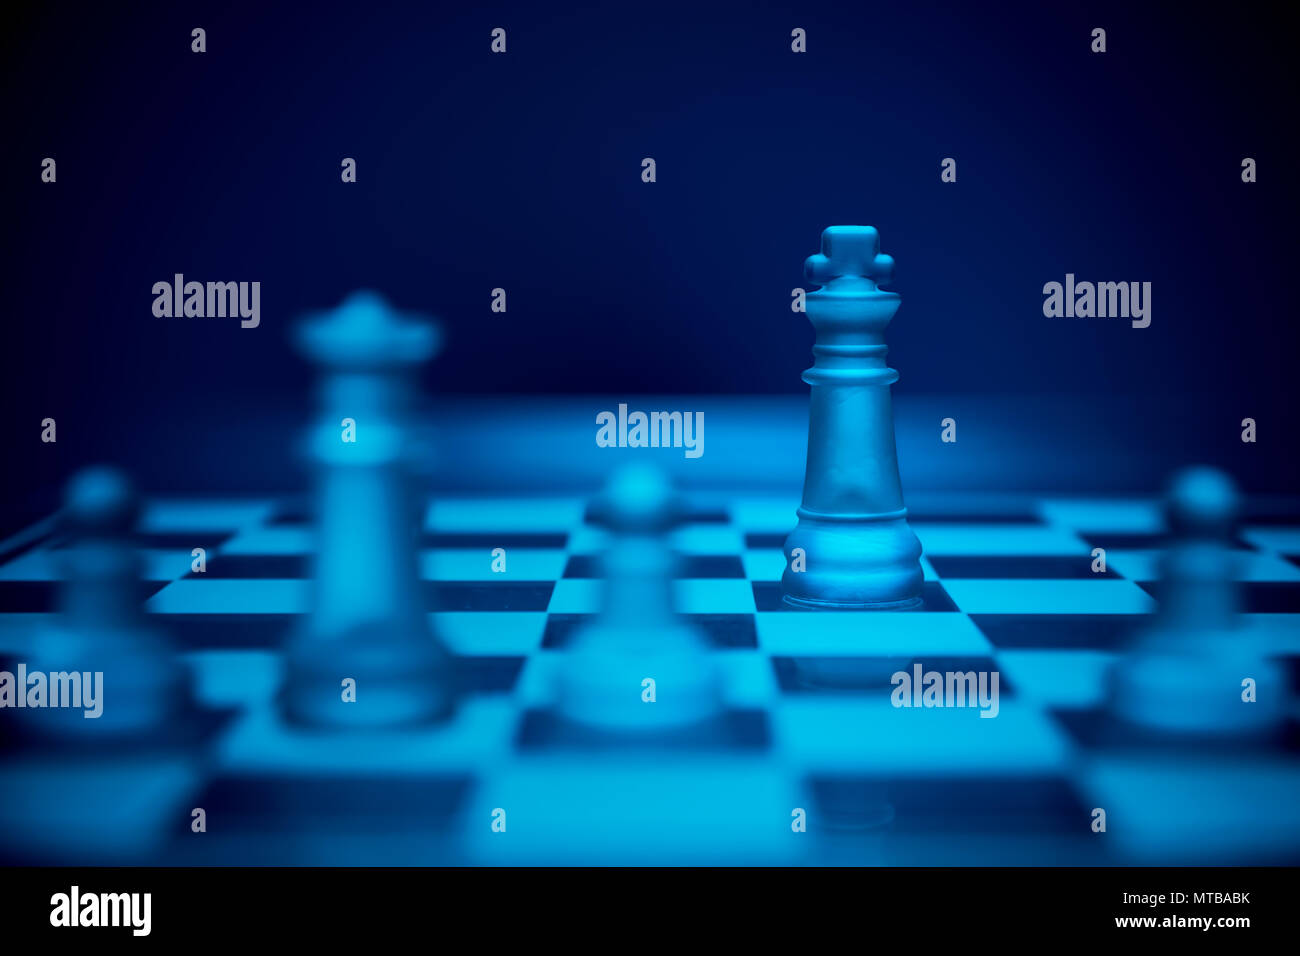 Chess game. King outmaneuvered and stalemate by the queen and pawns. - Stock Image